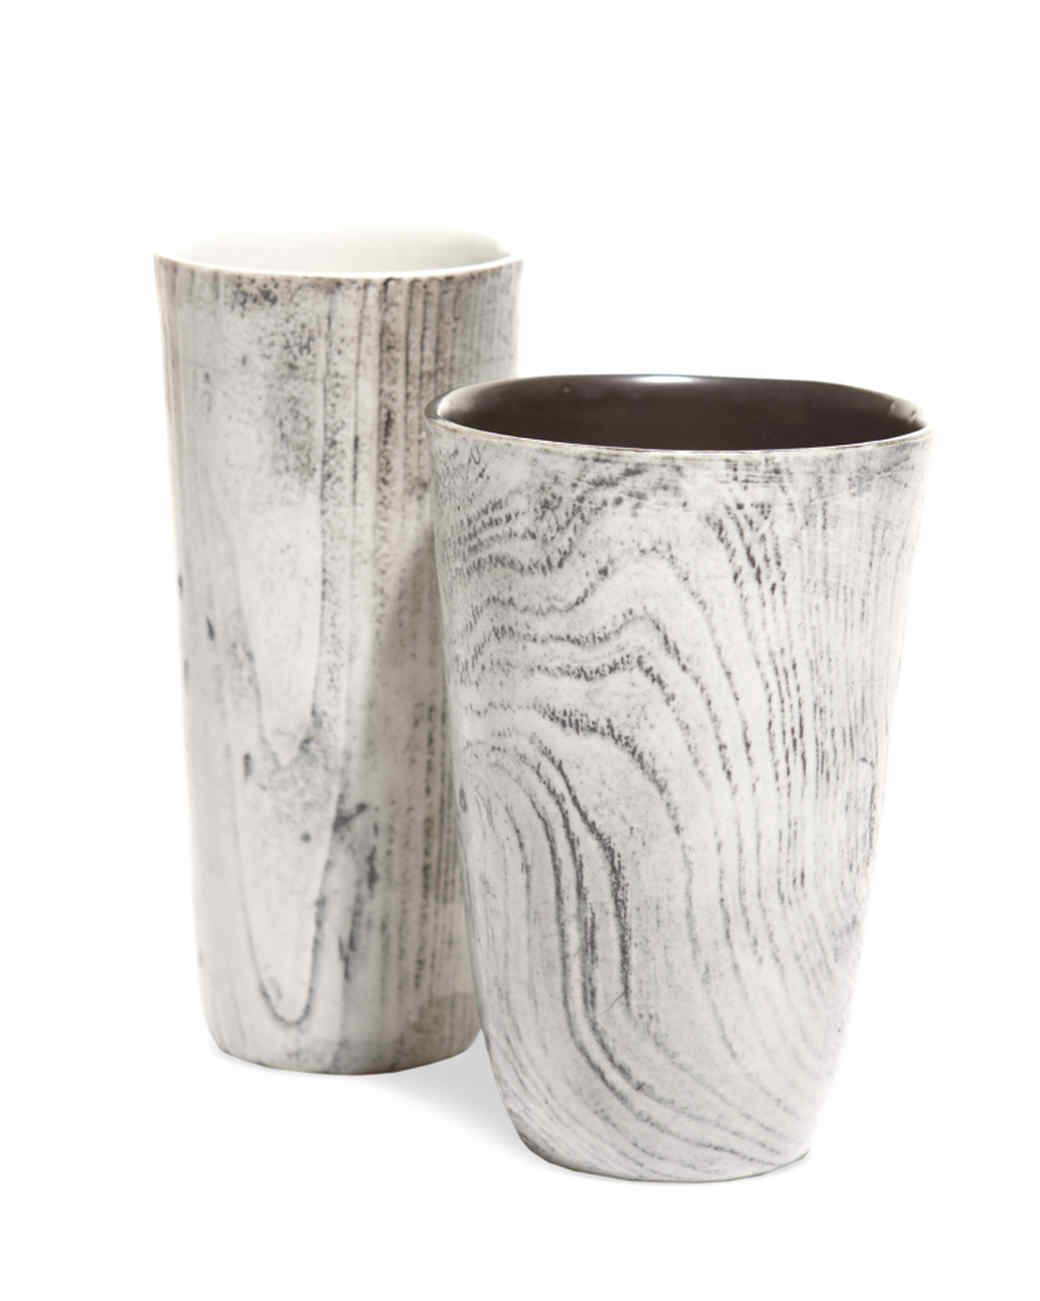 easy-entertaining-wooden-cup-mld108853.jpg